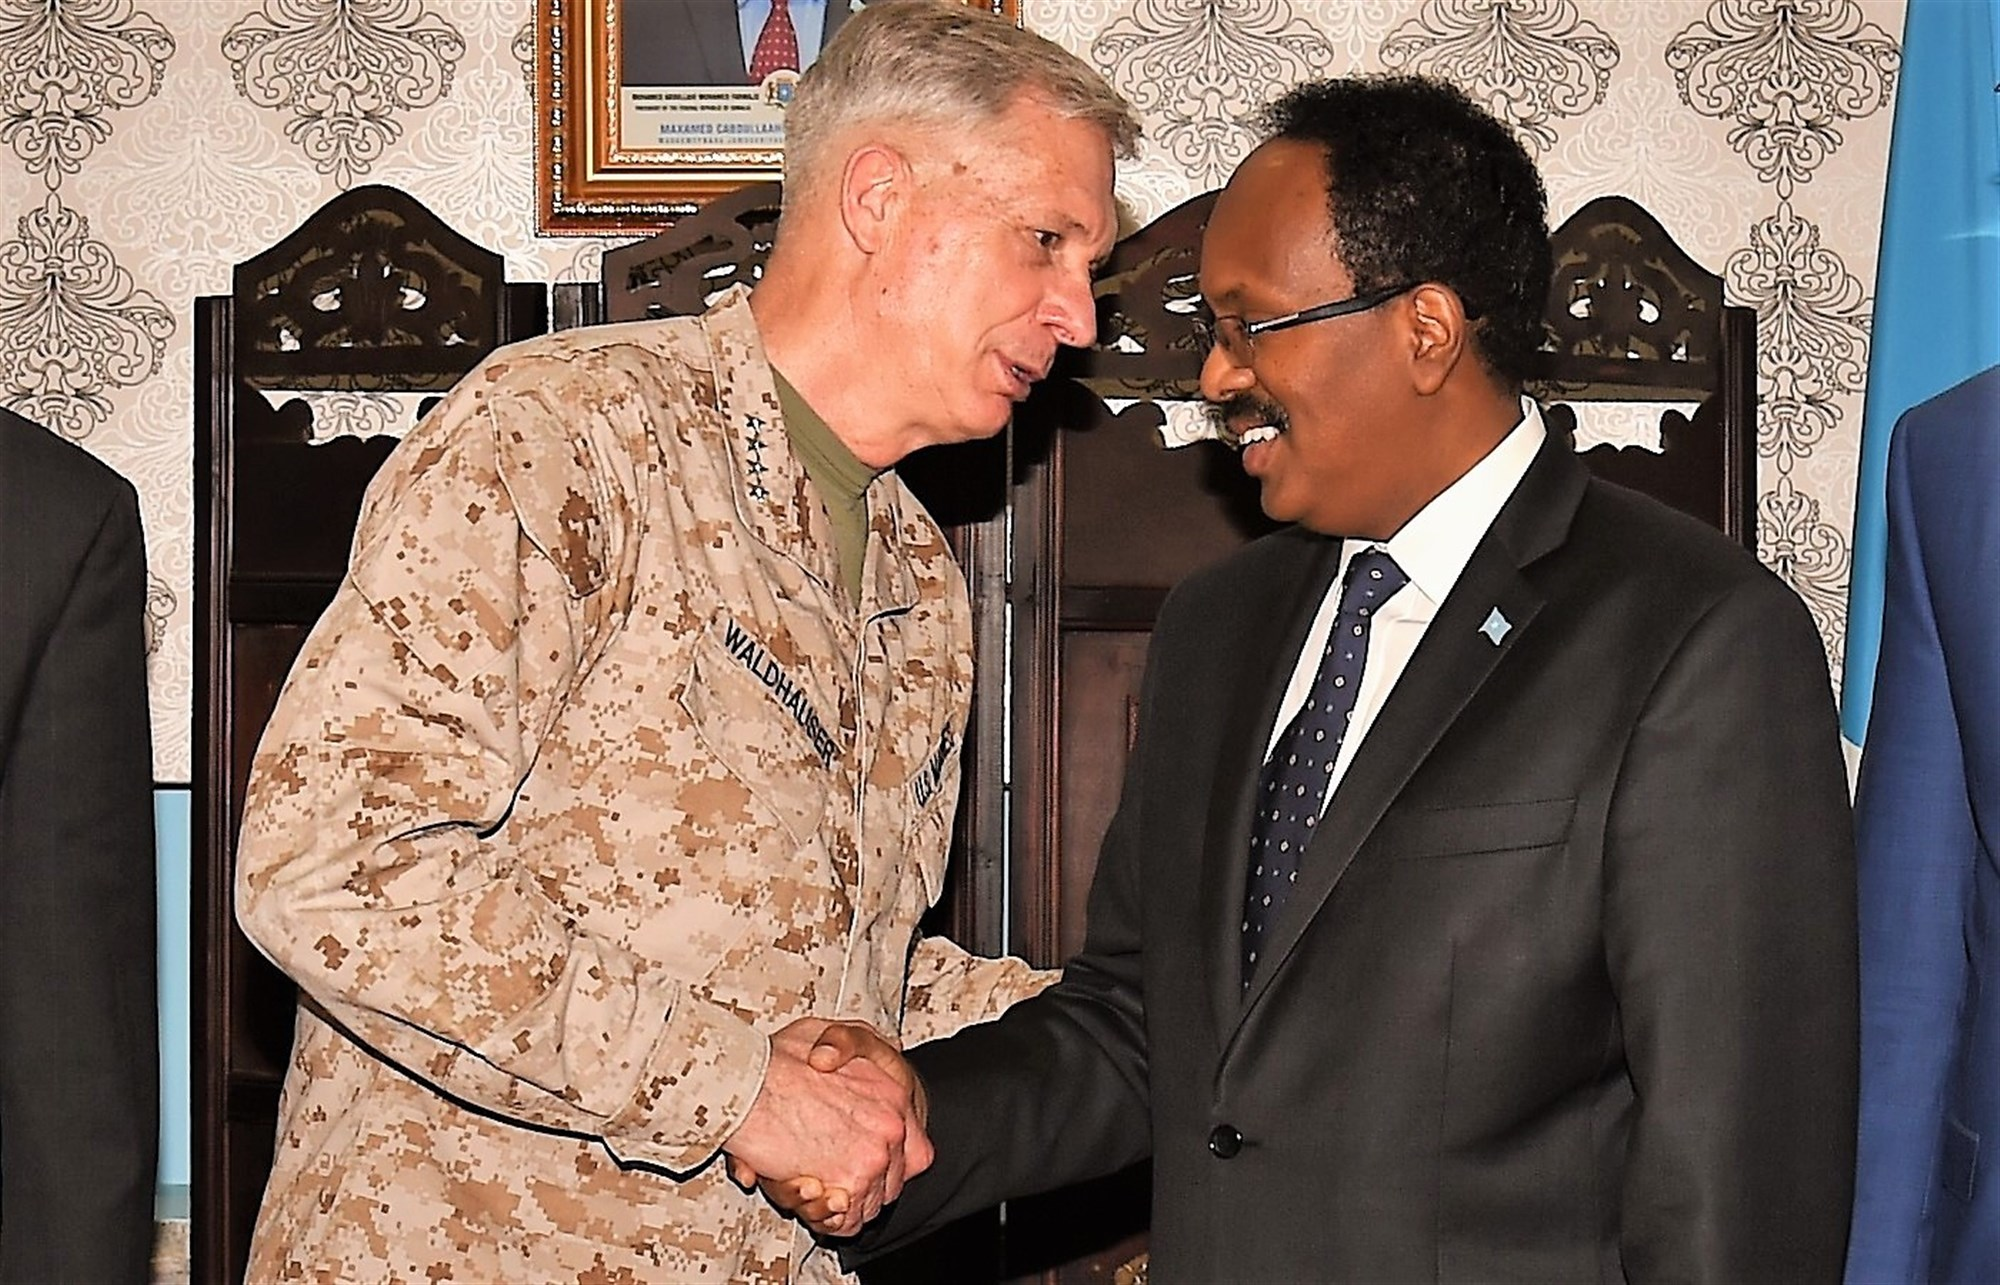 "U.S. Africa Command commander U.S. Marine Corps Gen. Thomas D. Waldhauser, and President of Somalia Mohamed Abdullahi Mohamed, known by his nickname ""Farmaajo,"" shake hands after their meeting held at Mogadishu International Airport, Somalia, April 29, 2017. With its partners, USAFRICOM works to neutralize transnational threats, protect U.S. personnel and facilities, prevent and mitigate conflict, and build defense capability to promote regional stability and prosperity. (U.S. Air National Guard photo by Tech. Sgt. Andria Allmond/Released)"